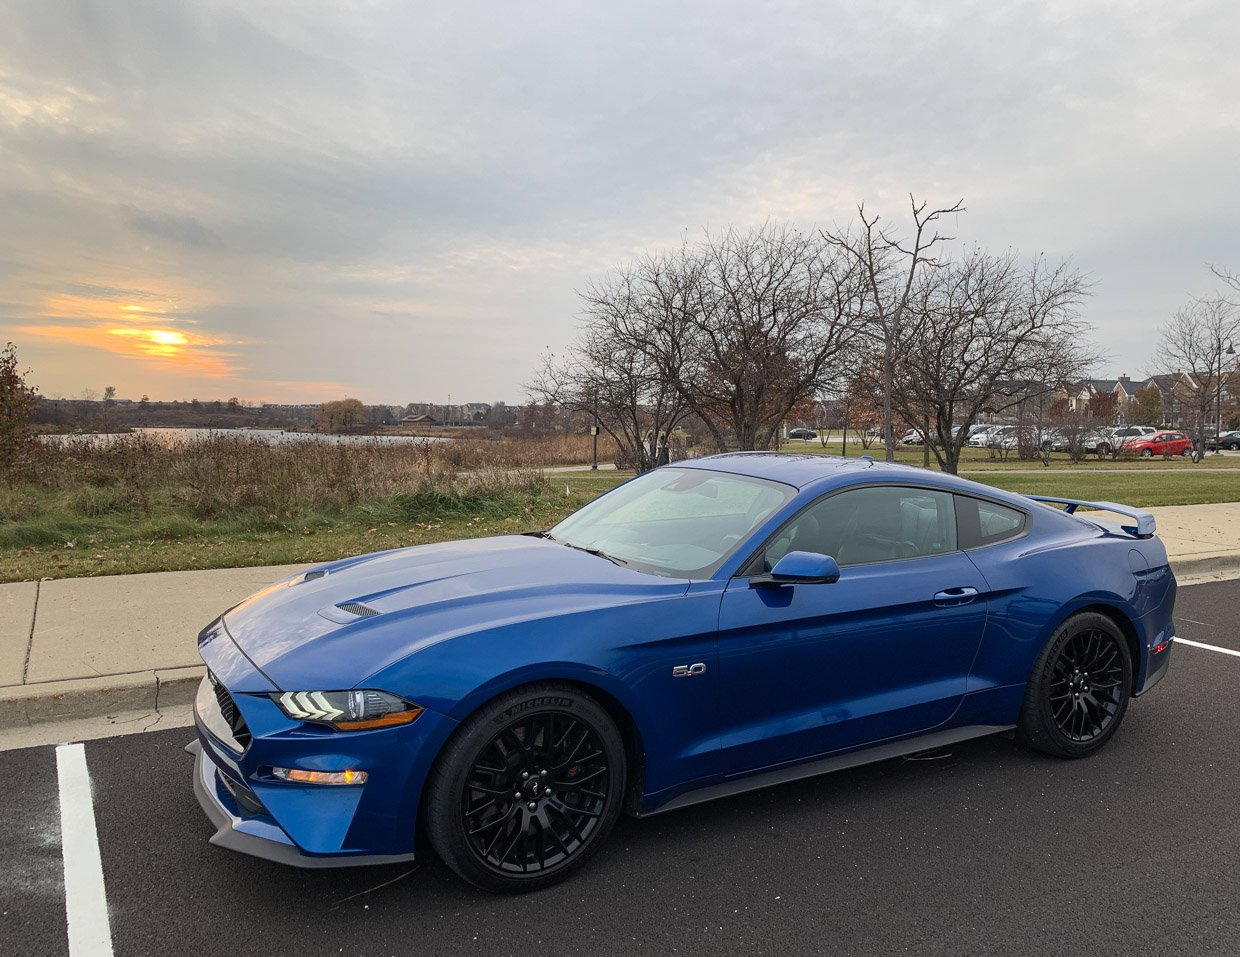 Ford Mustang GT: 10 Things We Love